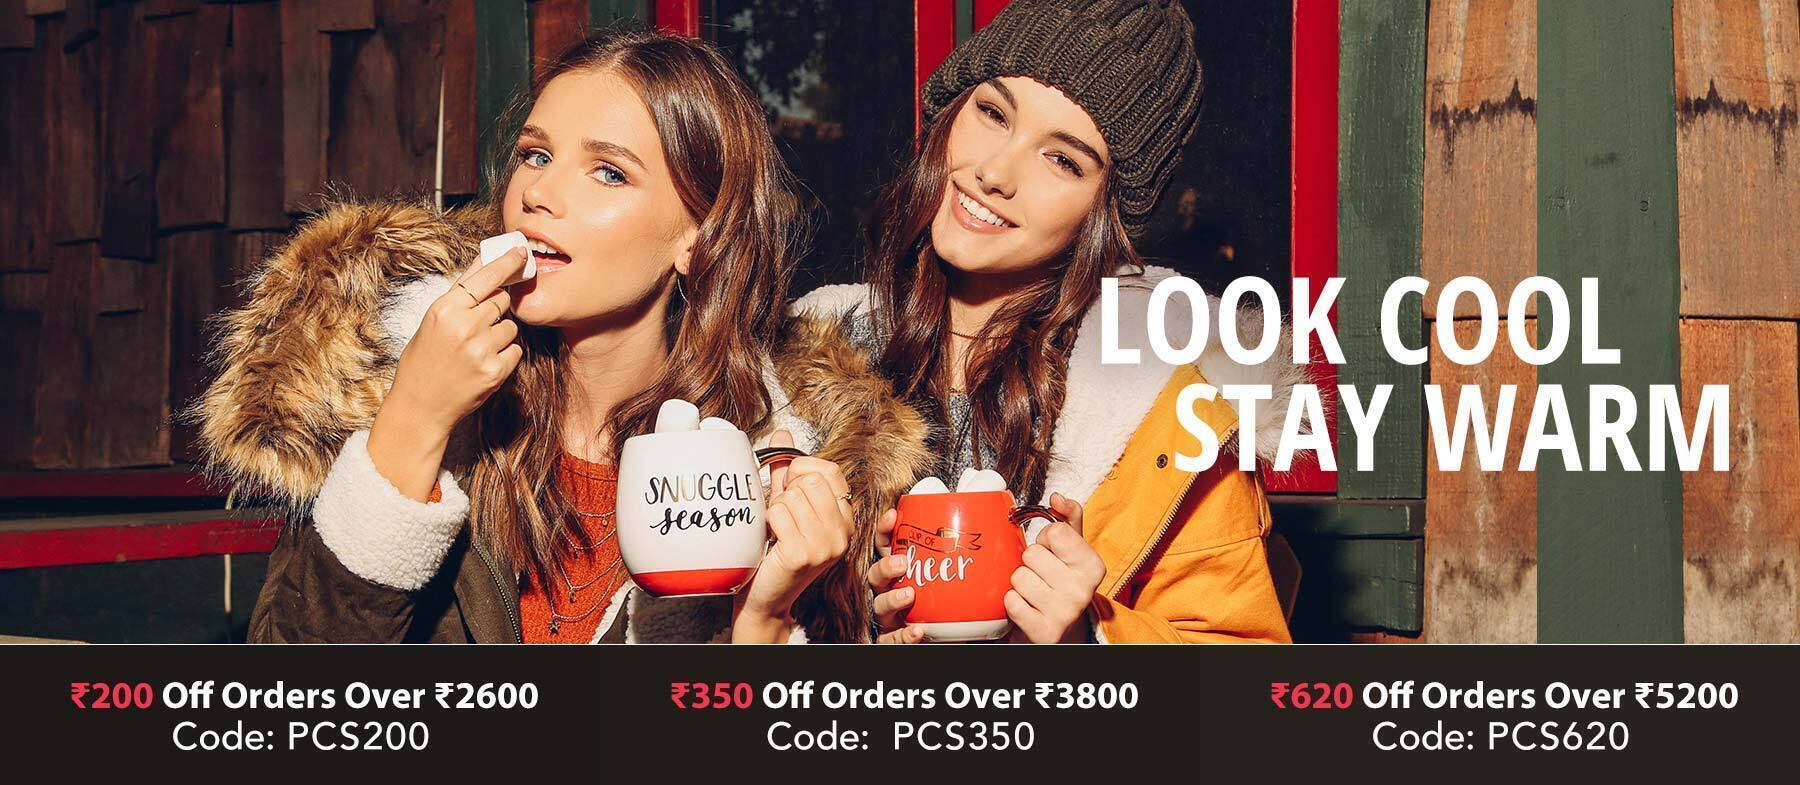 offer on Shein